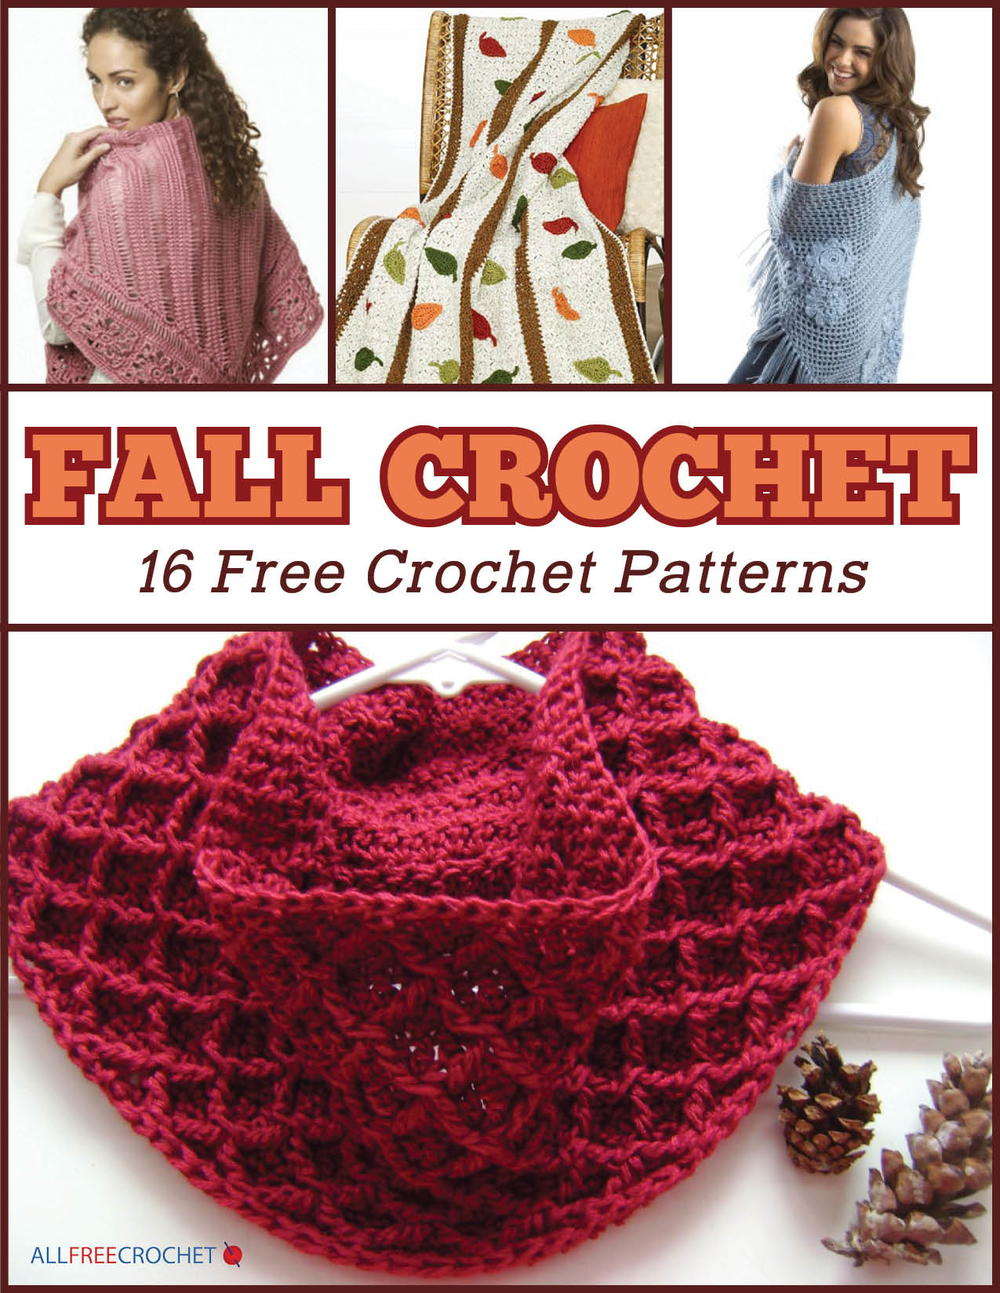 Fall Crochet 16 Free Crochet Patterns Ebook